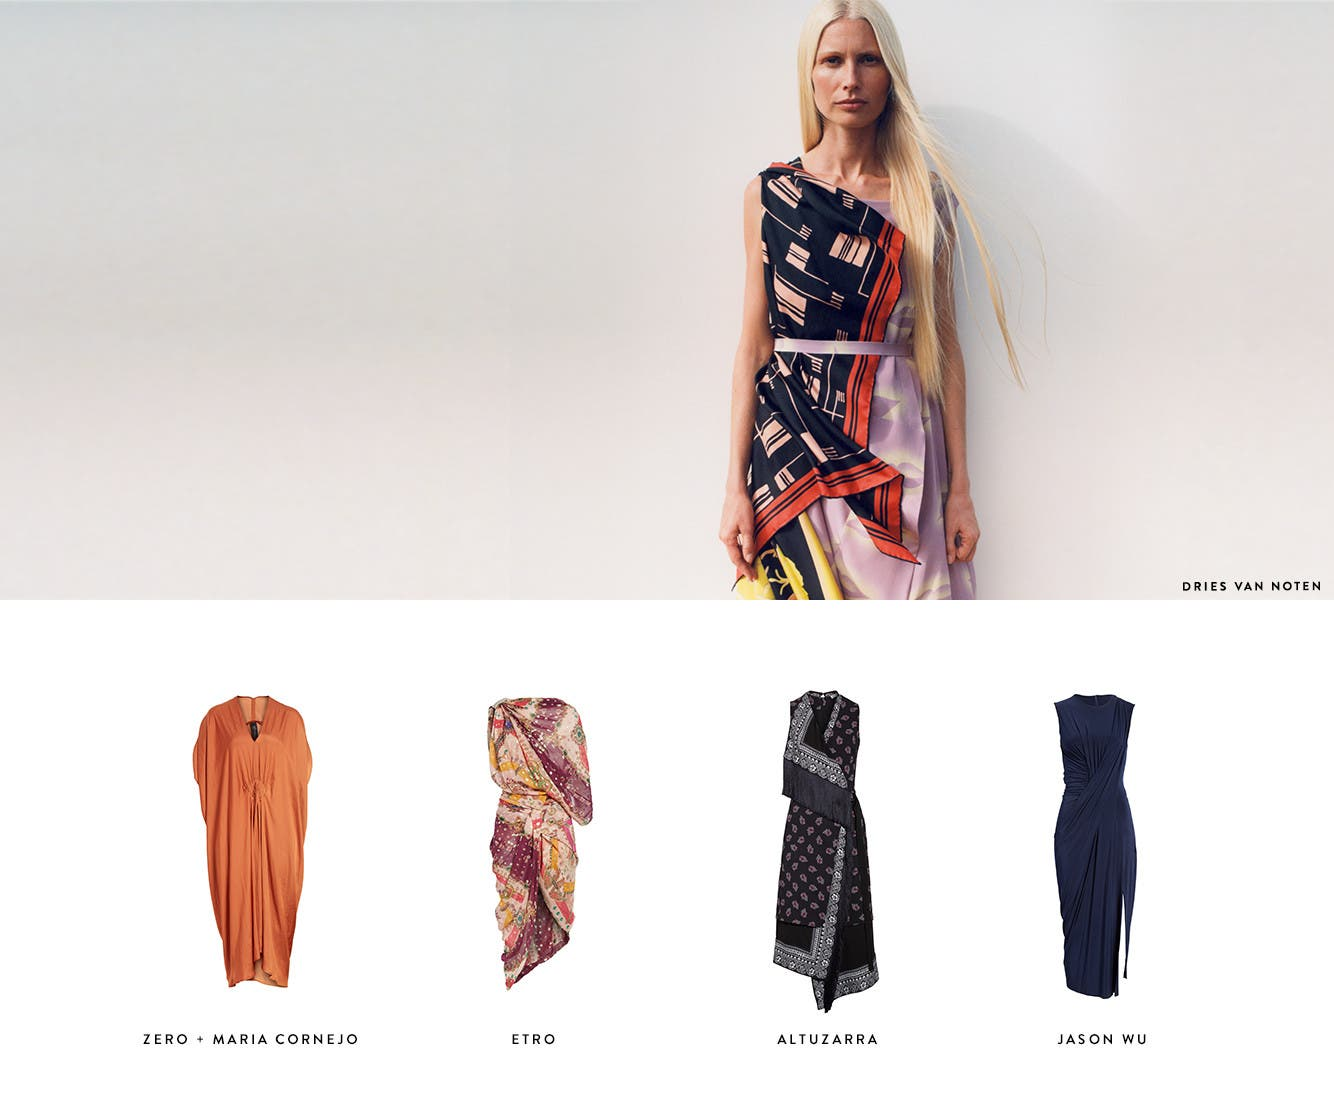 Draped designer dresses from Dries Van Noten and more.